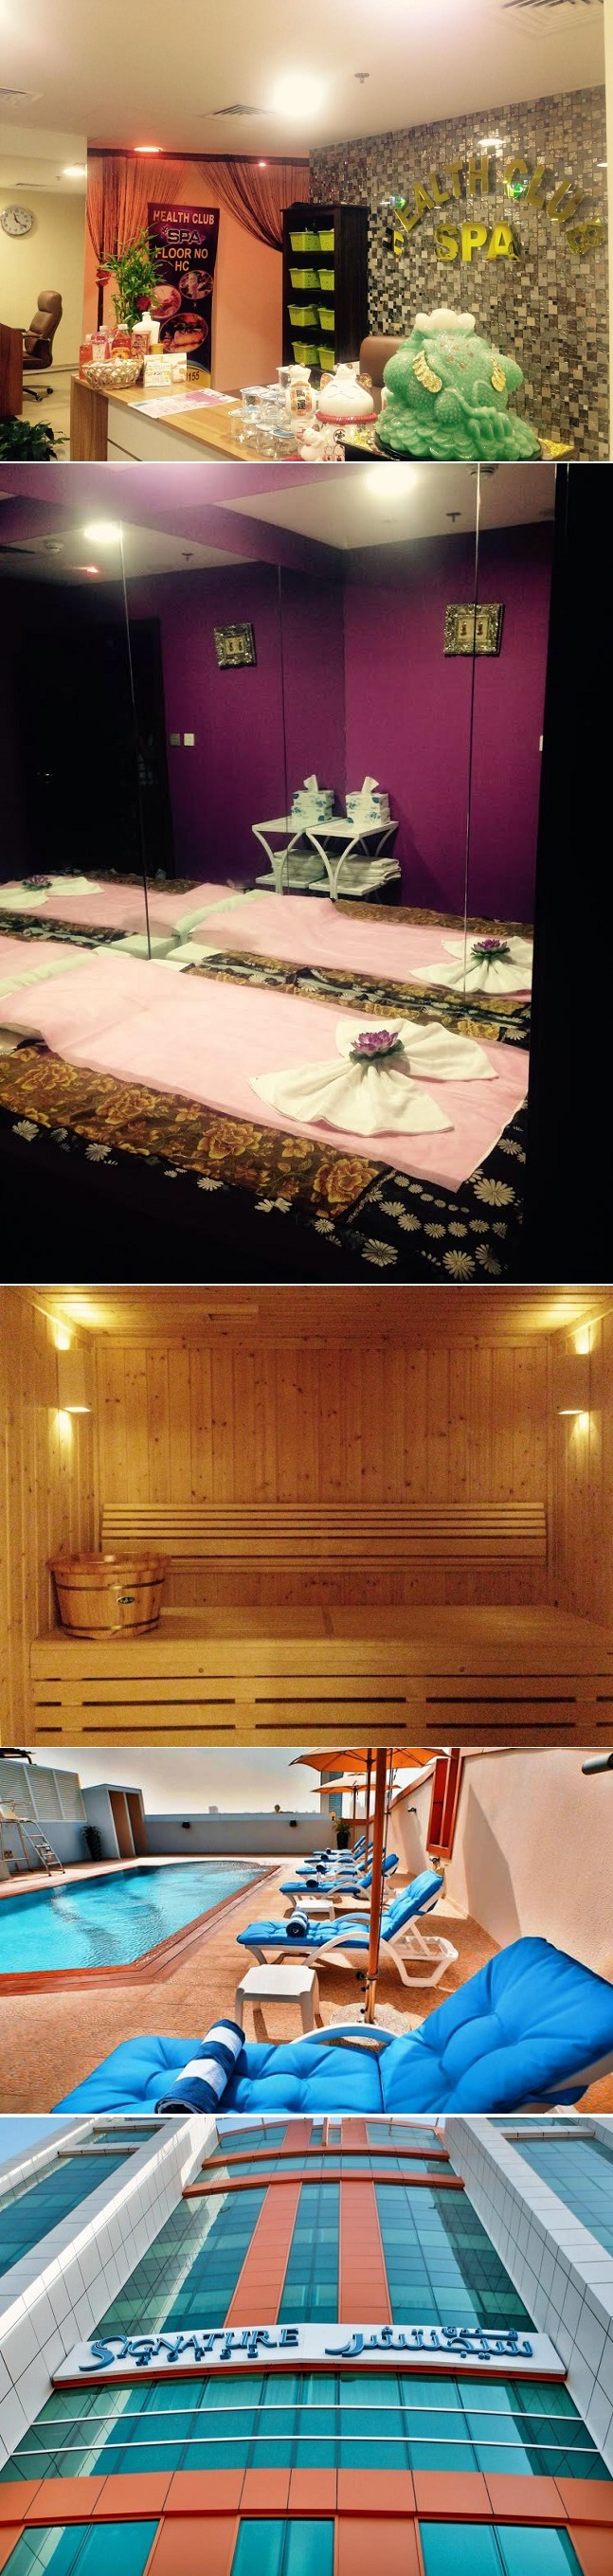 60 minute full body massage & Sauna & Steam bath access for only AED 99